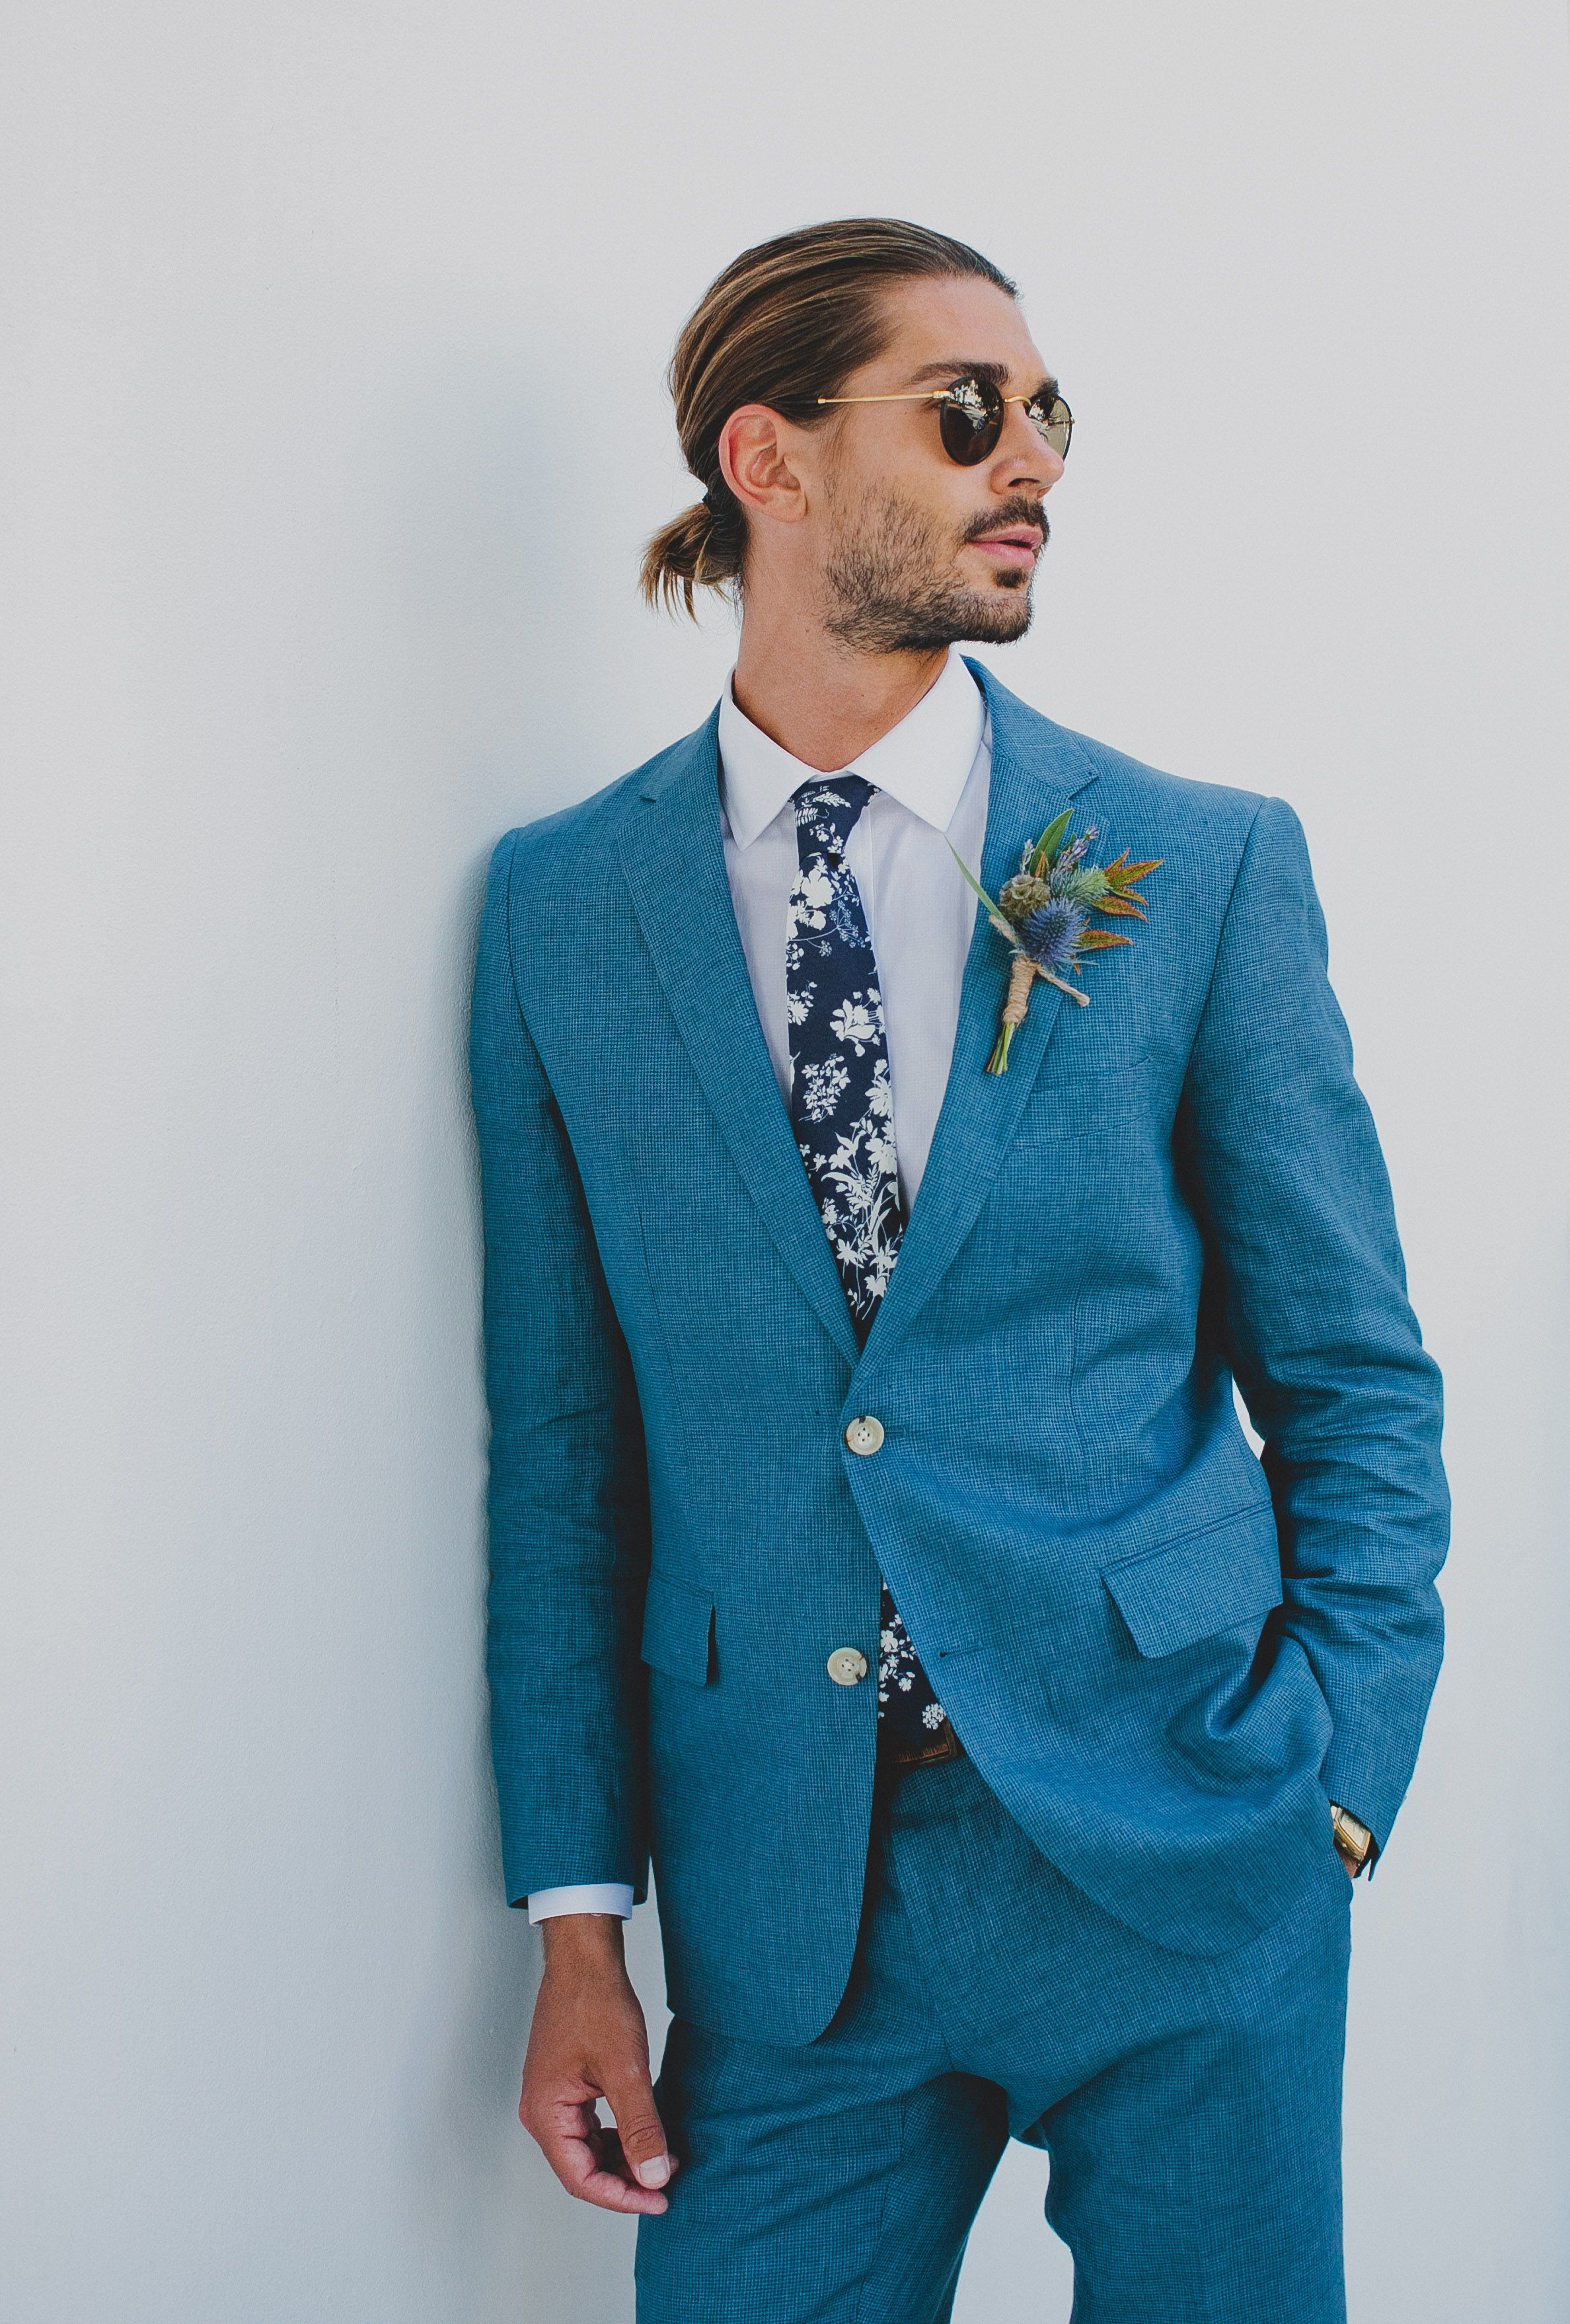 Introducing The GWS x Neck & Tie Company Tie Collection